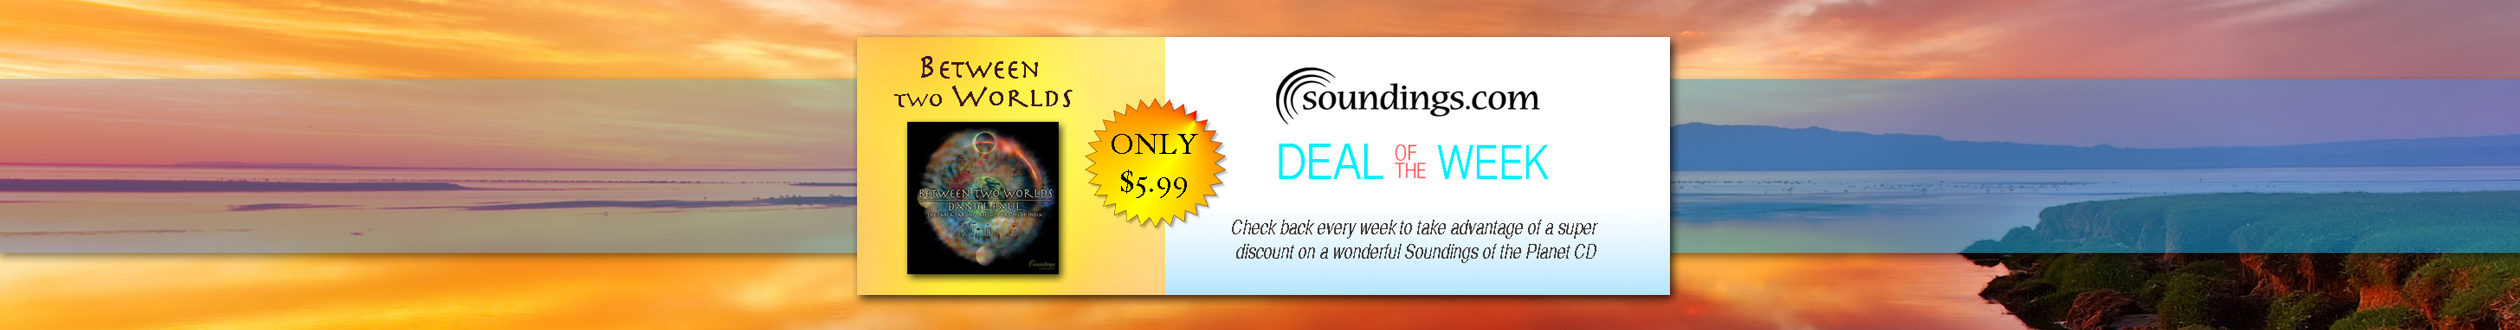 Deal-of-the-Week-Between-Two-Worlds-Full-Slider_